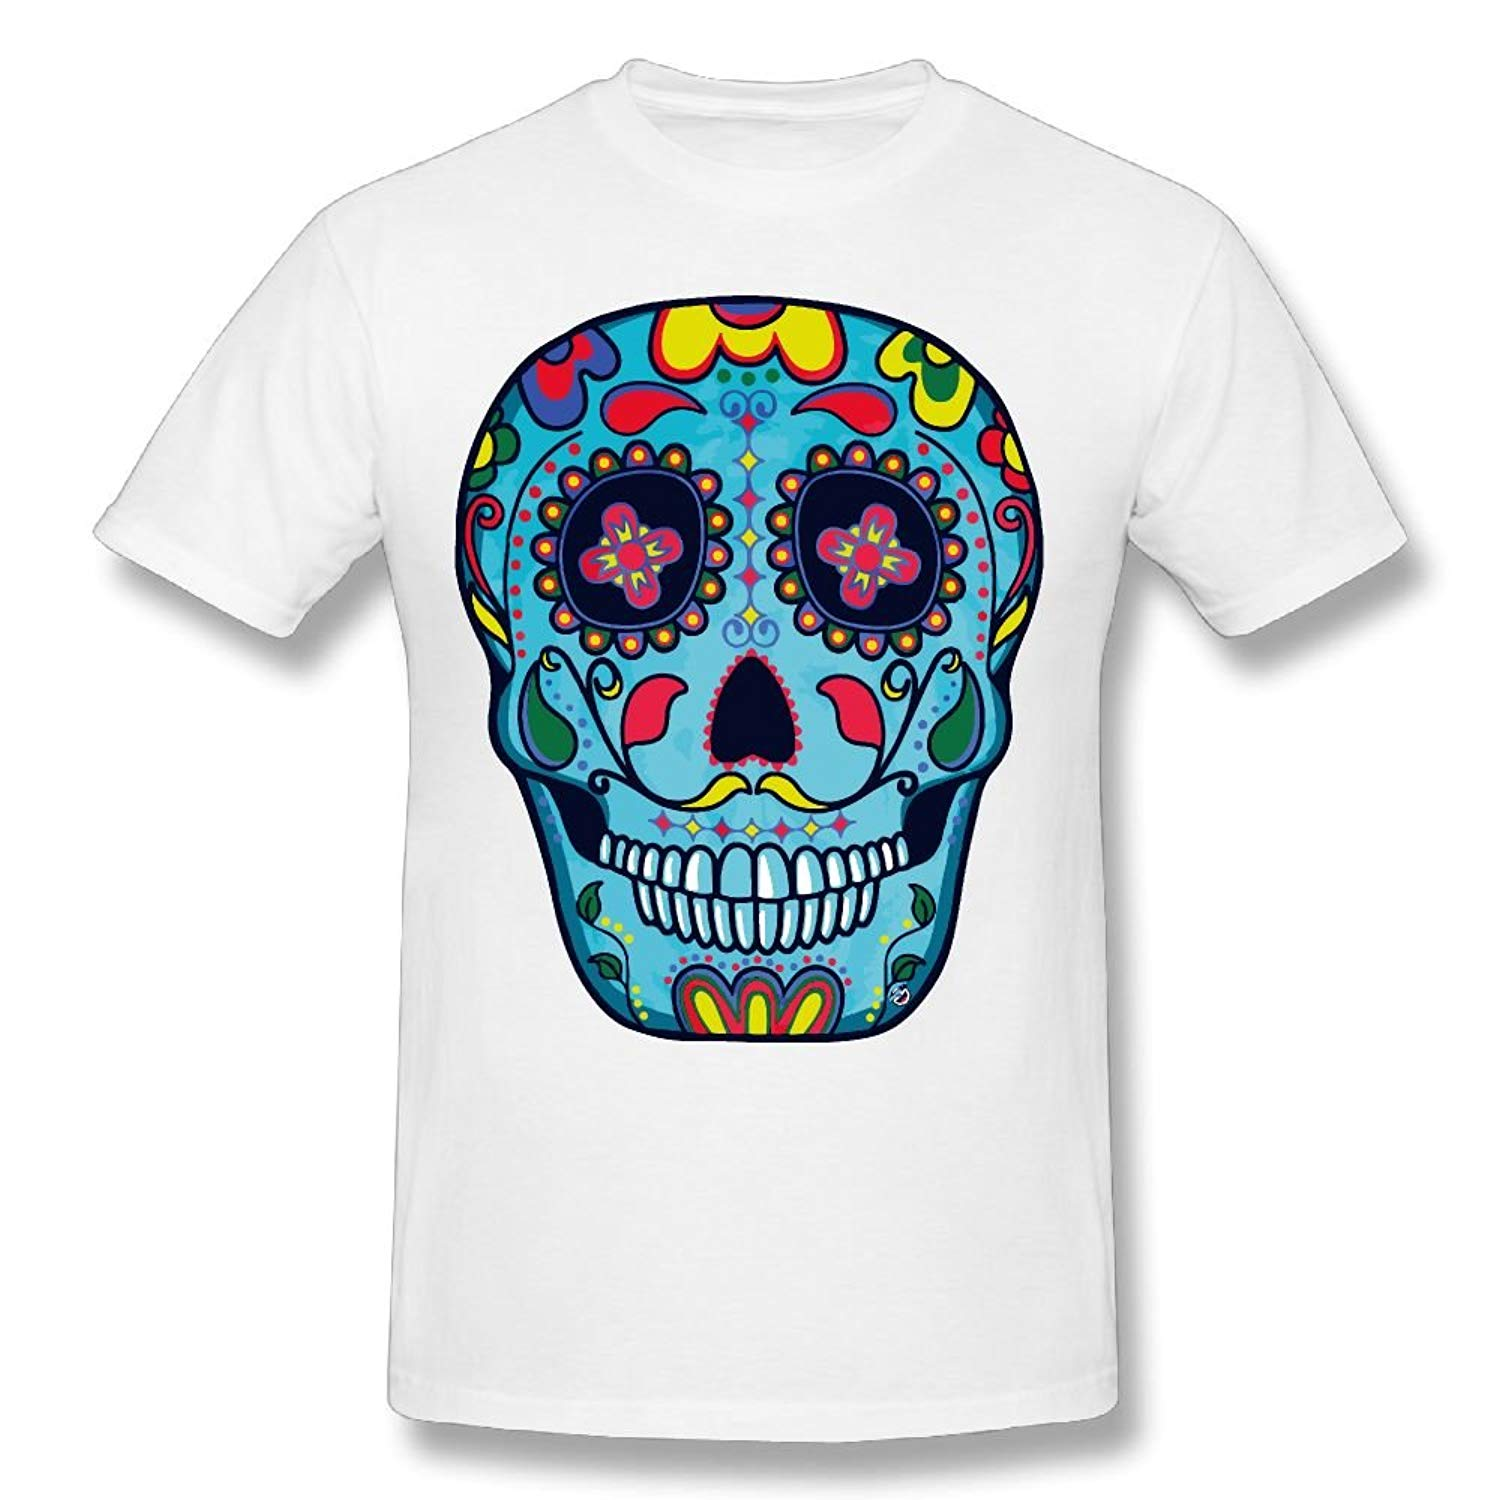 Men 39 s Sugar Skull 100 Cotton Prints Casual Short Sleeve T Shirt Printing Casual T Shirt Men 39 S Tees New 2018 Funny in T Shirts from Men 39 s Clothing